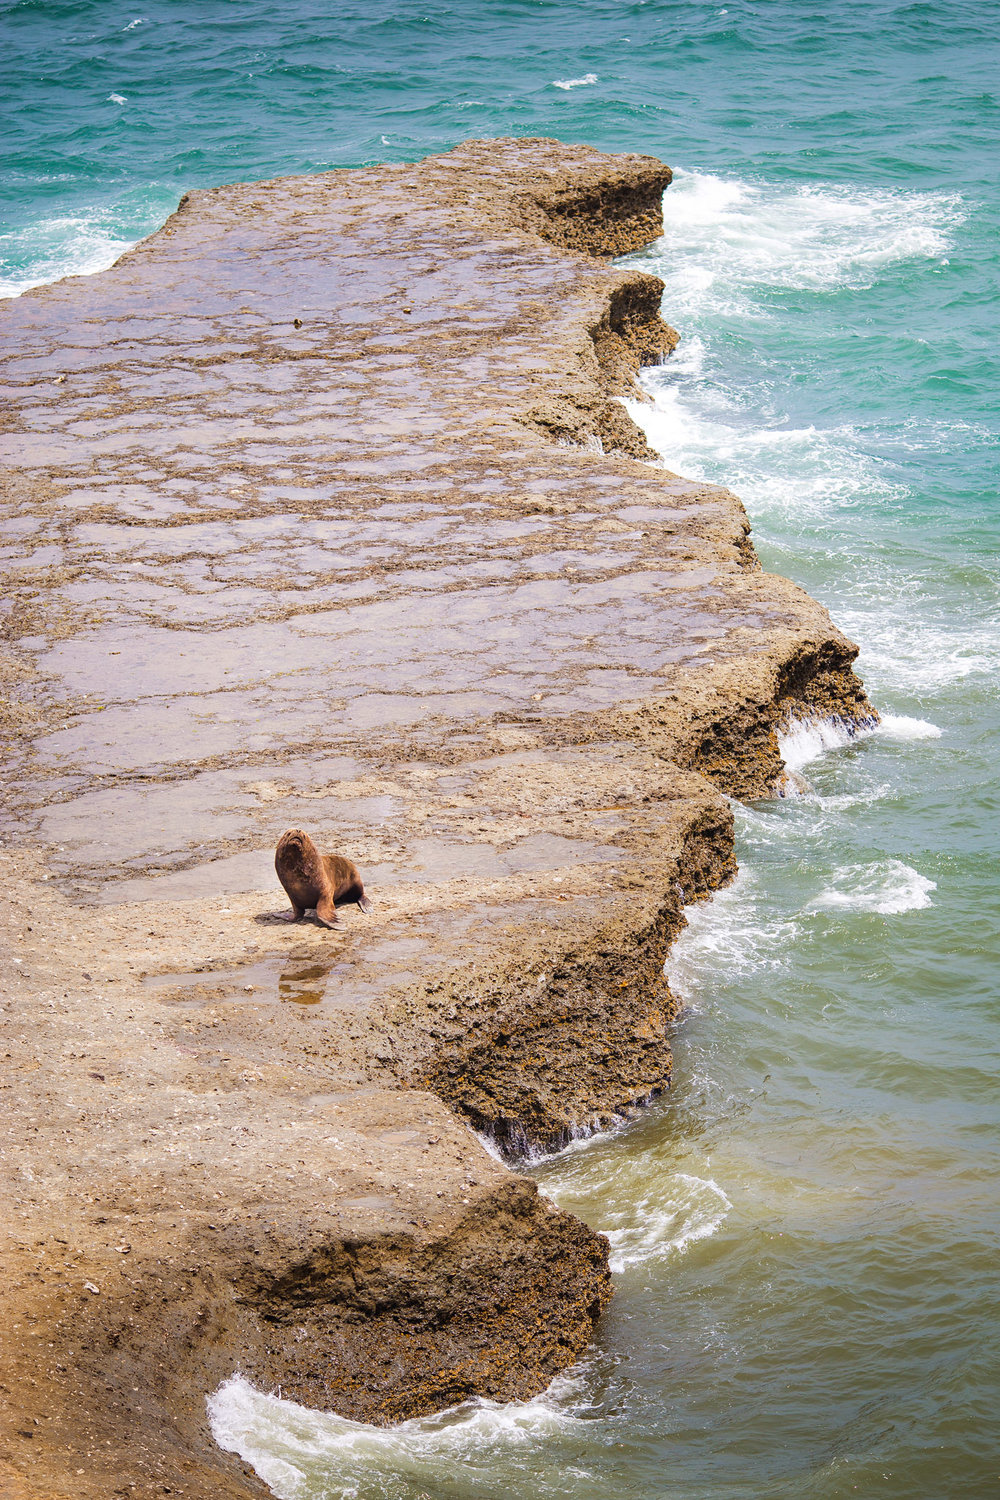 wedding-travellers-argentina-peninsula-valdes-sea-lion